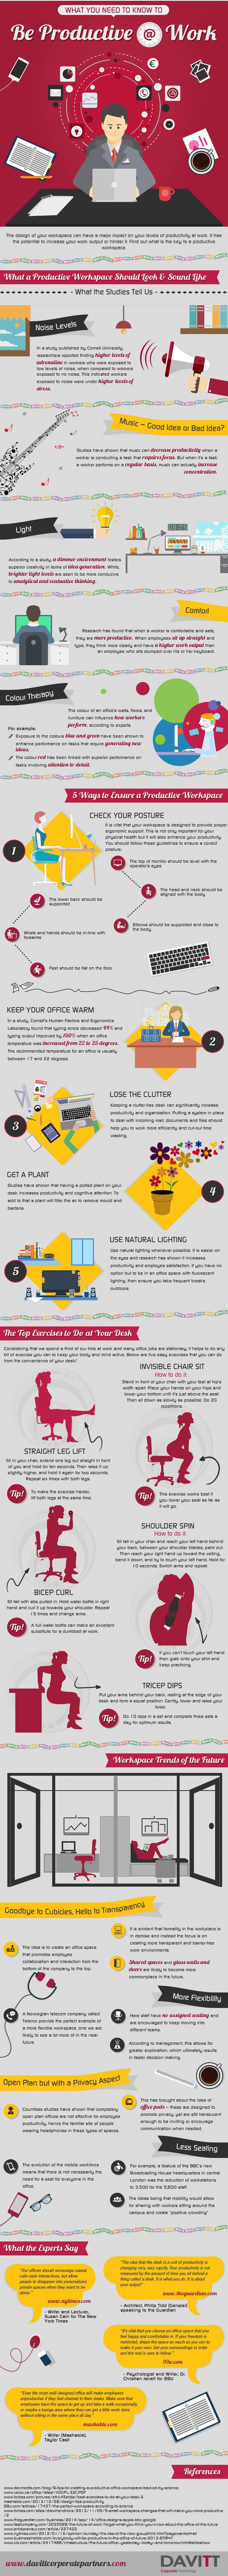 Be Productive at Work [Infographic]